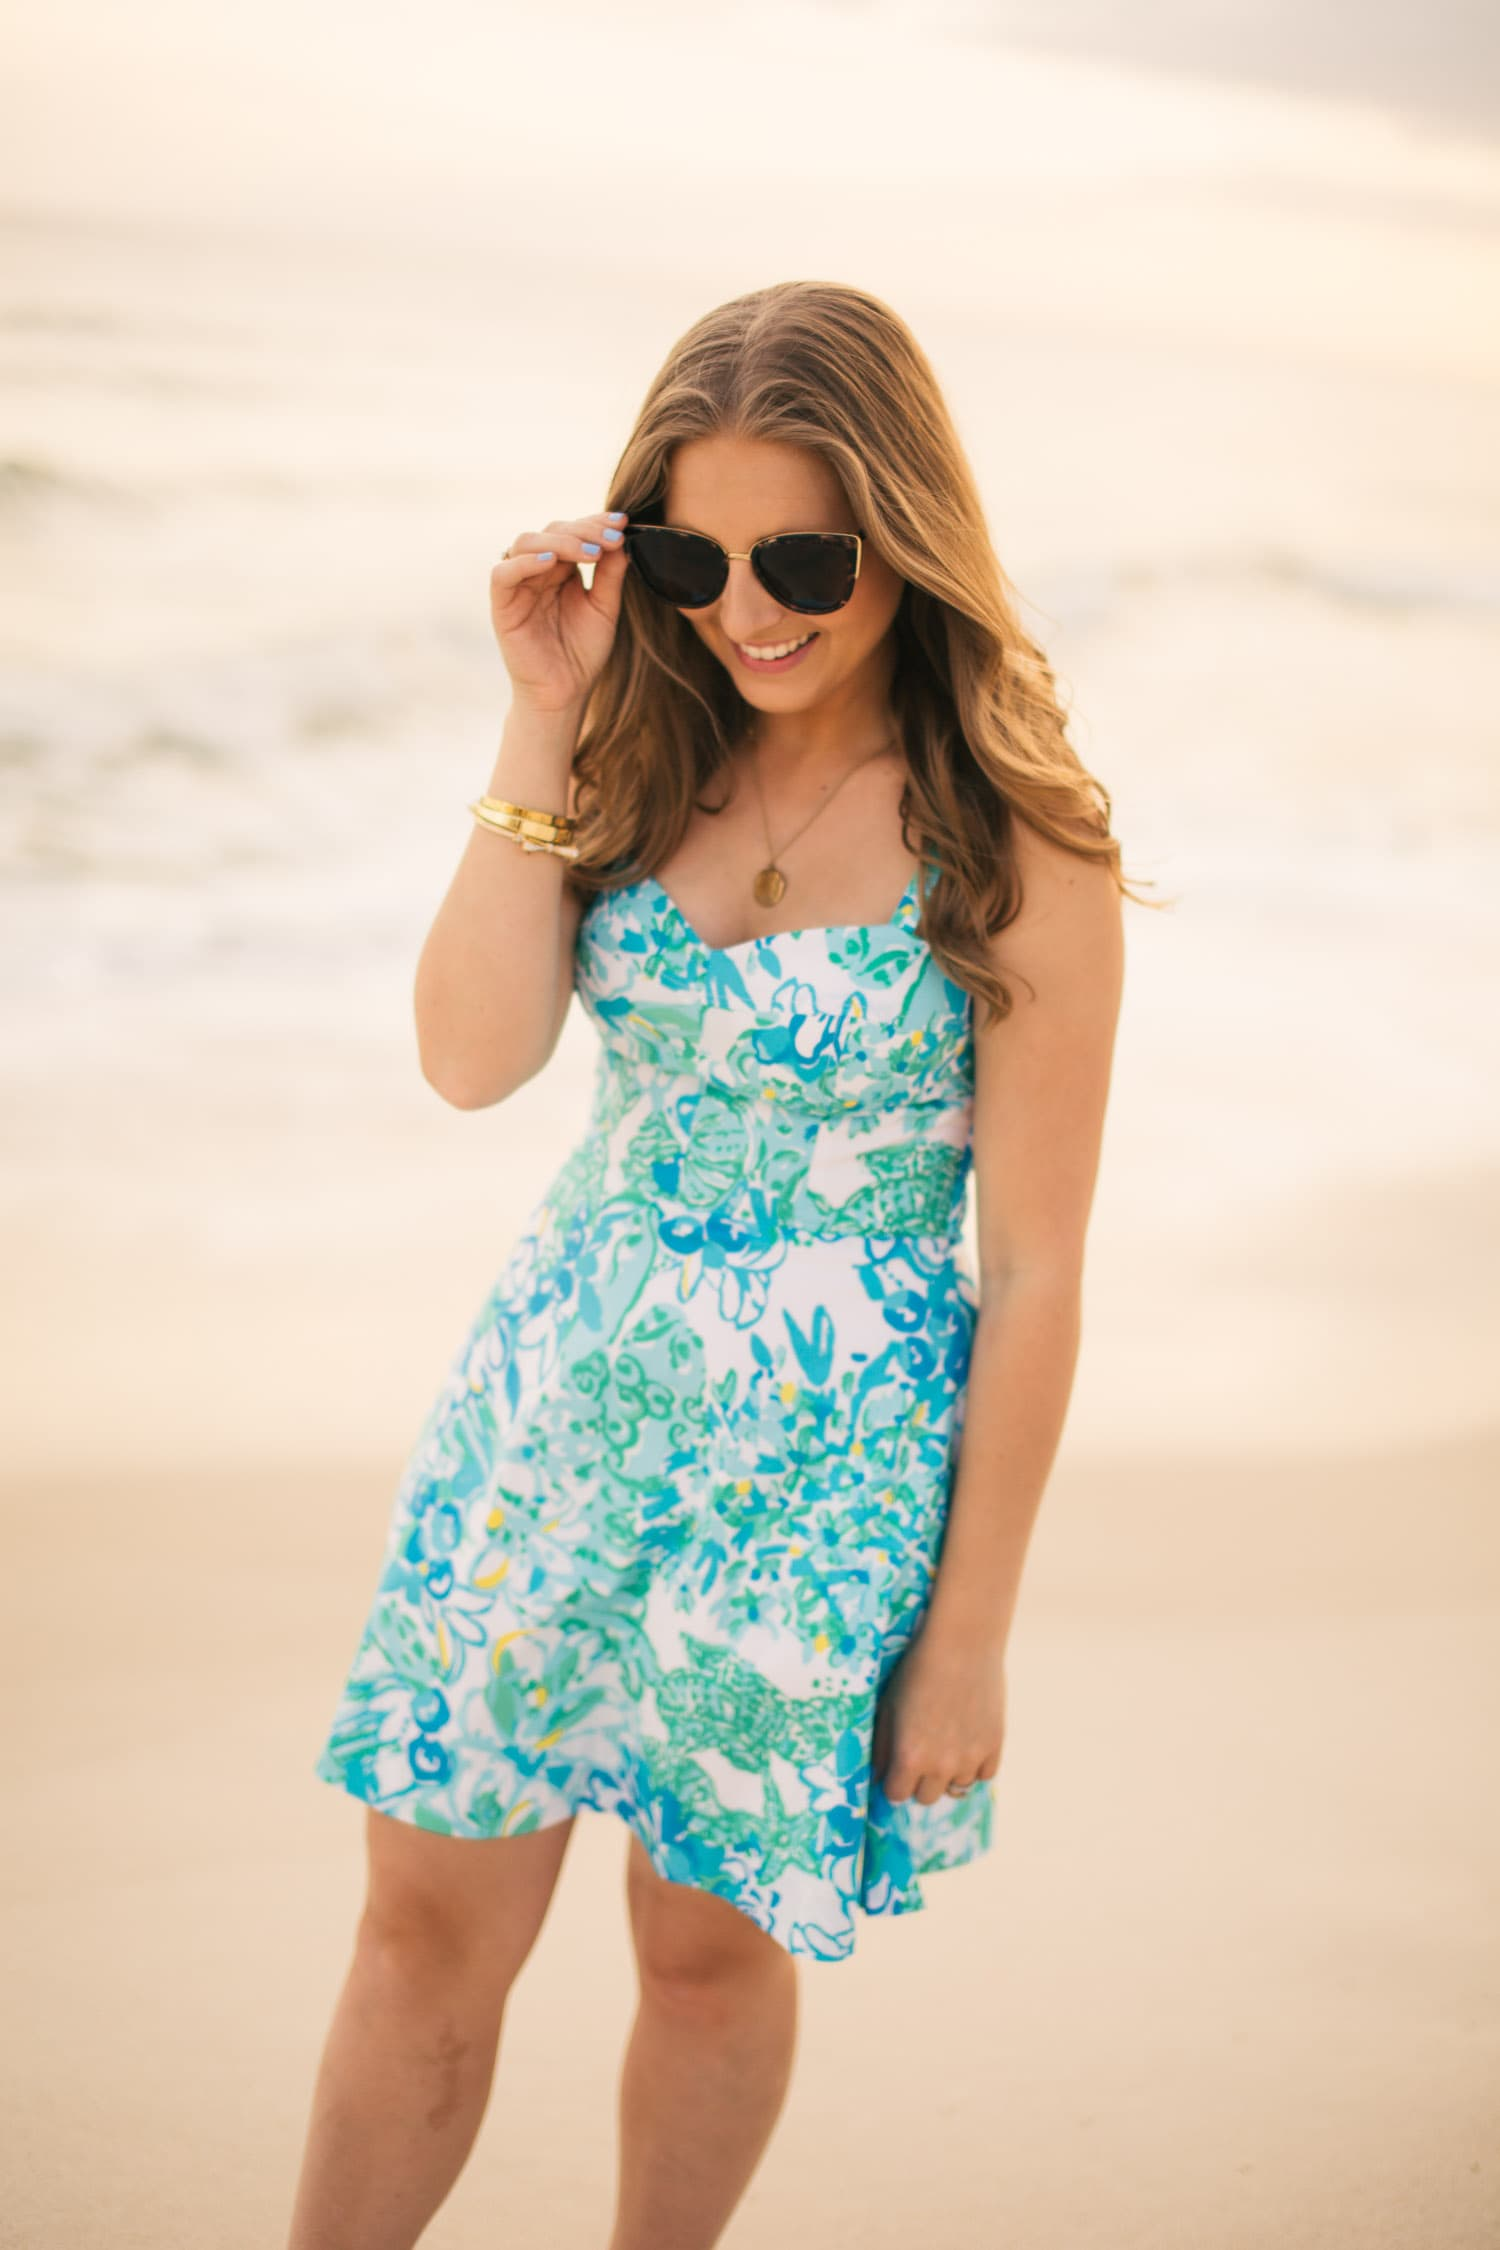 Shop The Lilly Pulitzer After Party Sale + 6 Outfits Featuring Items from The Sale